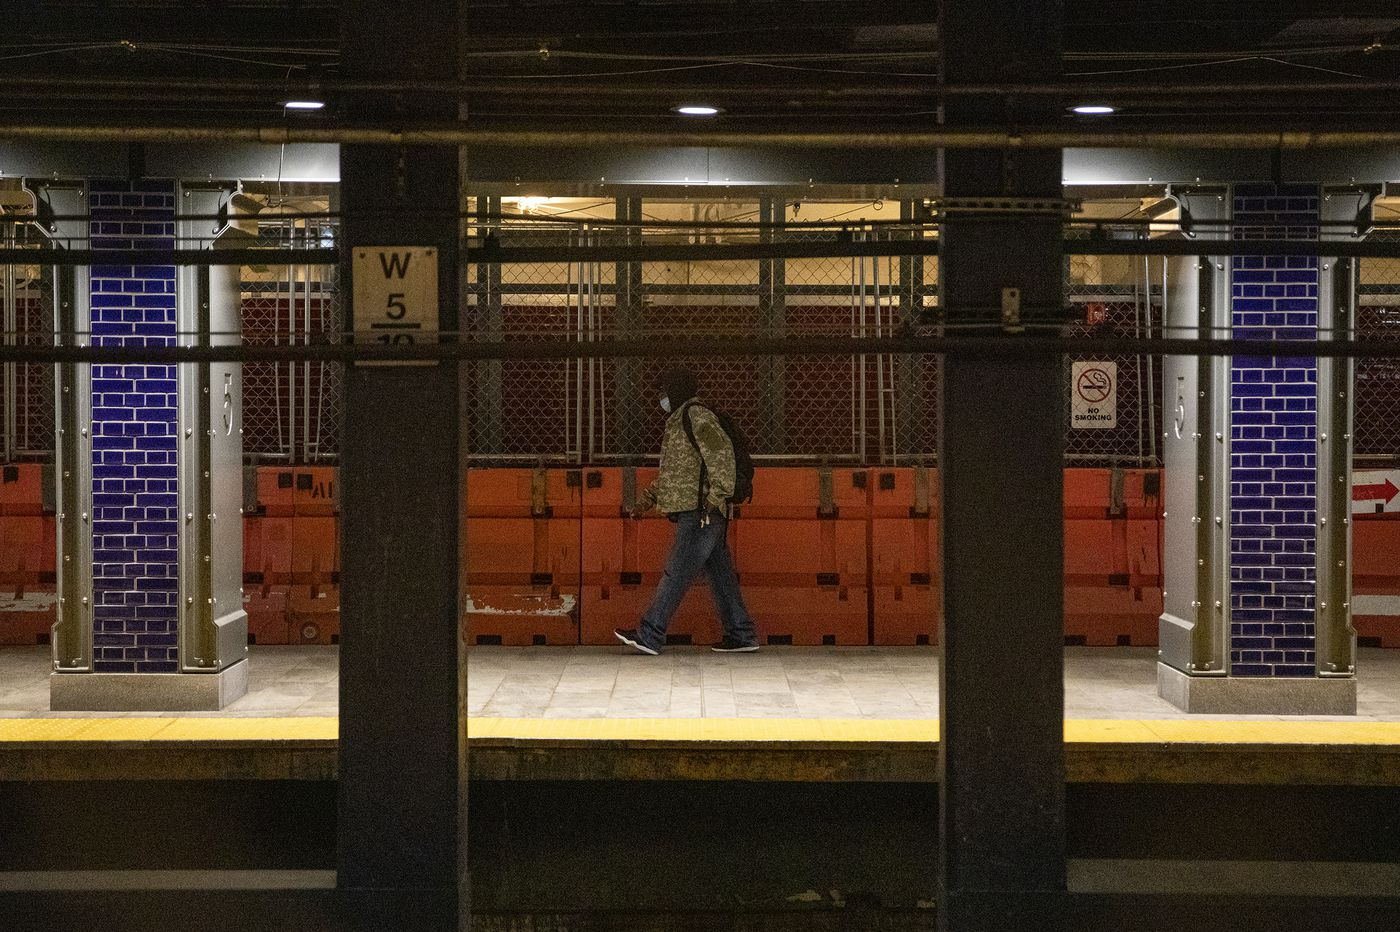 It's all on the line for SEPTA and its riders, from service cuts to layoffs